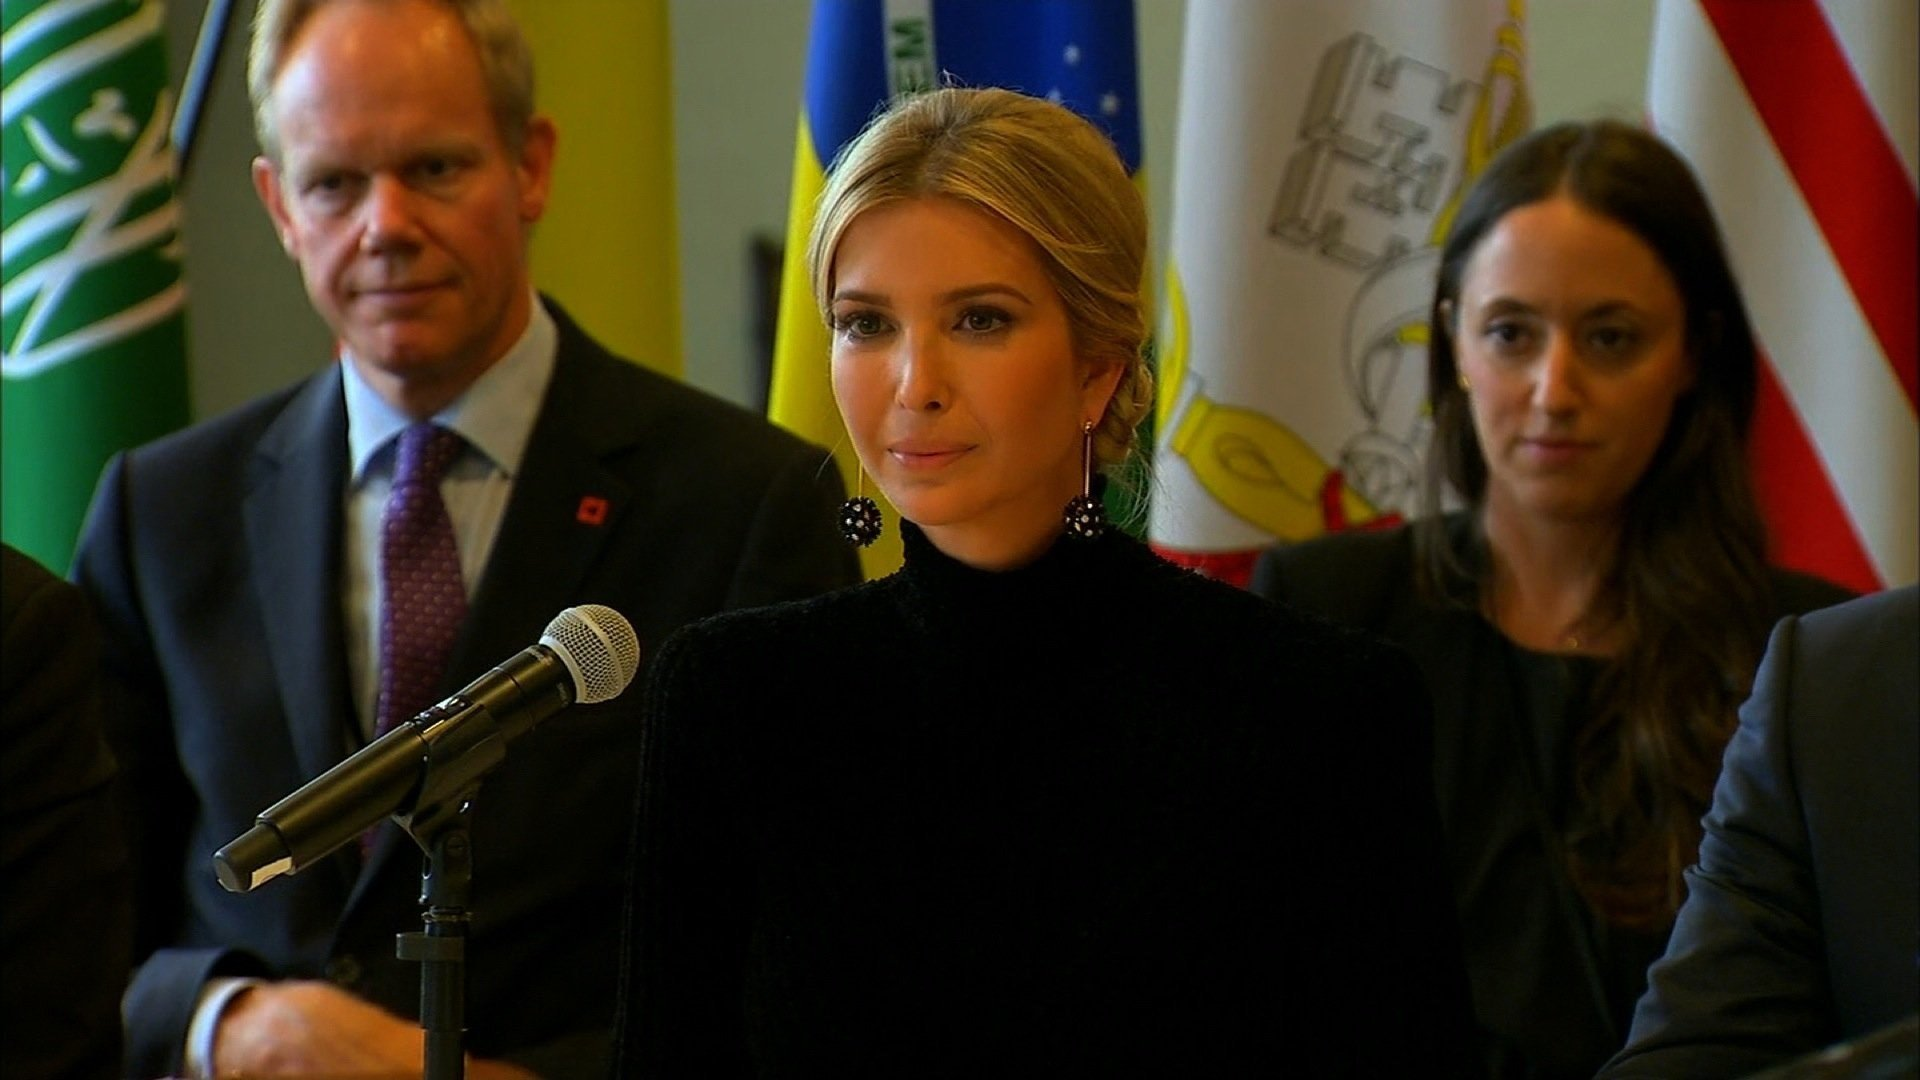 'Permanent Ivanka' keeping NYC plastic surgeon busy; patients dropping $50K for look